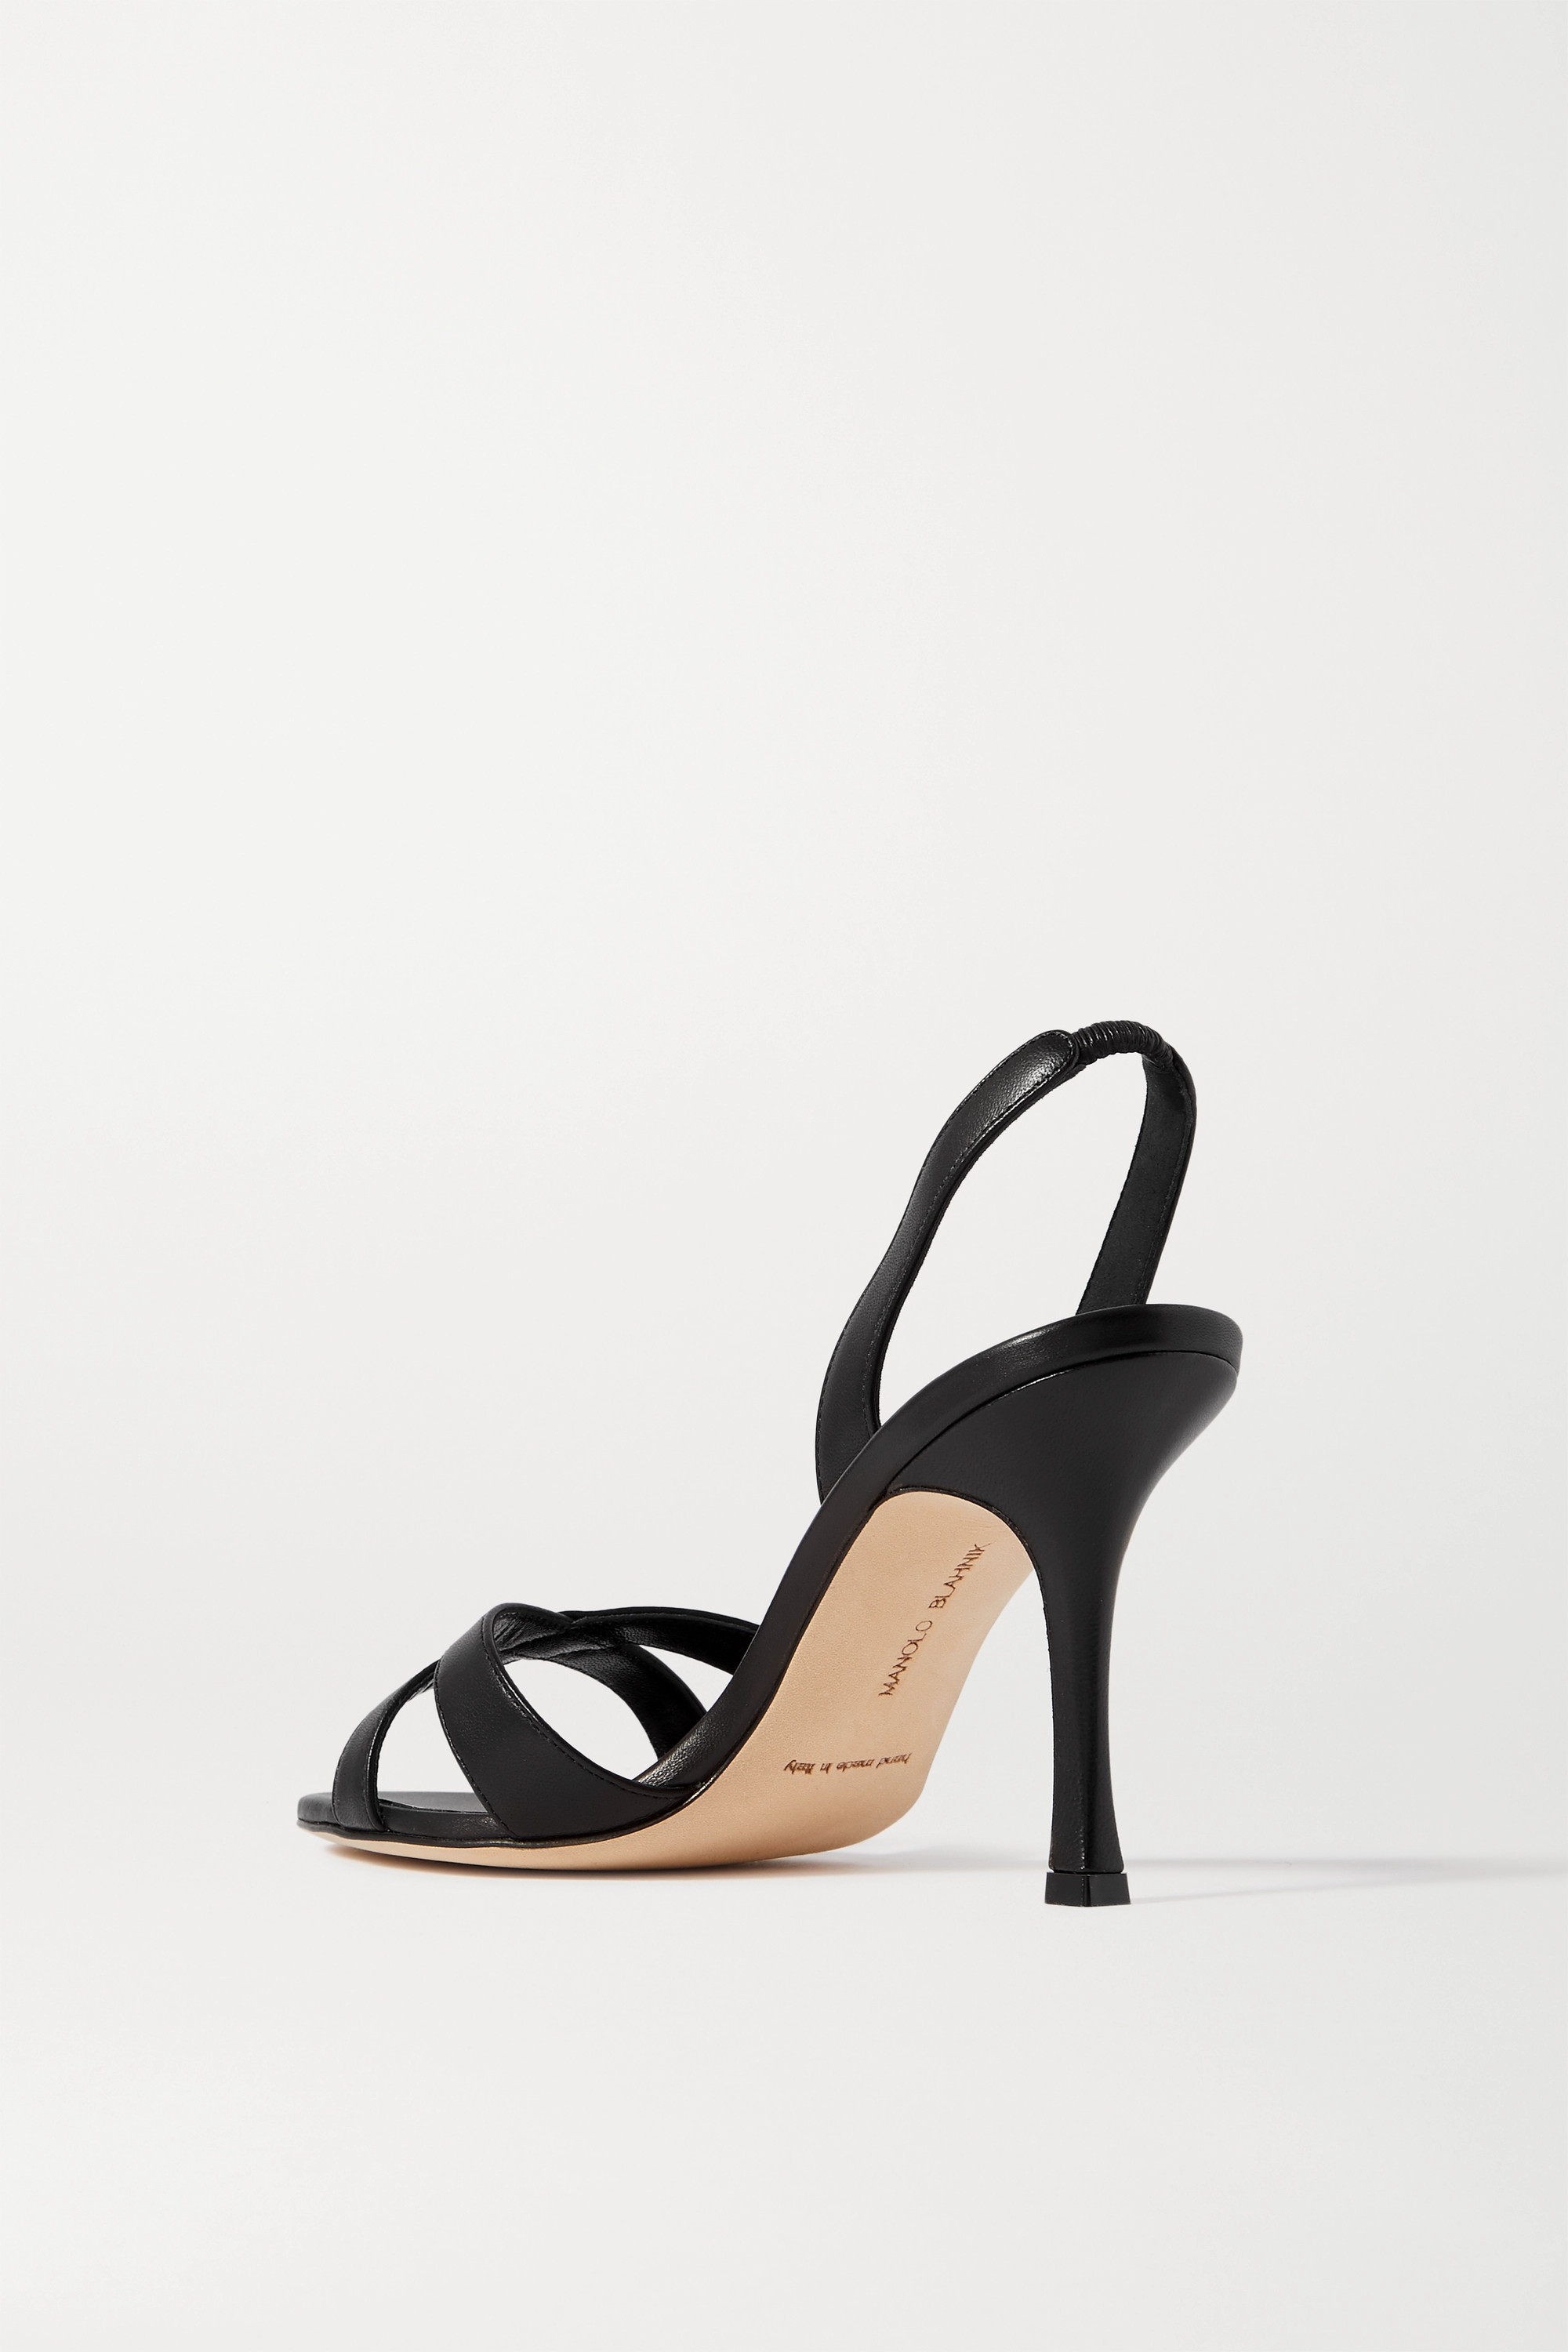 Manolo Blahnik Callasli leather slingback sandals